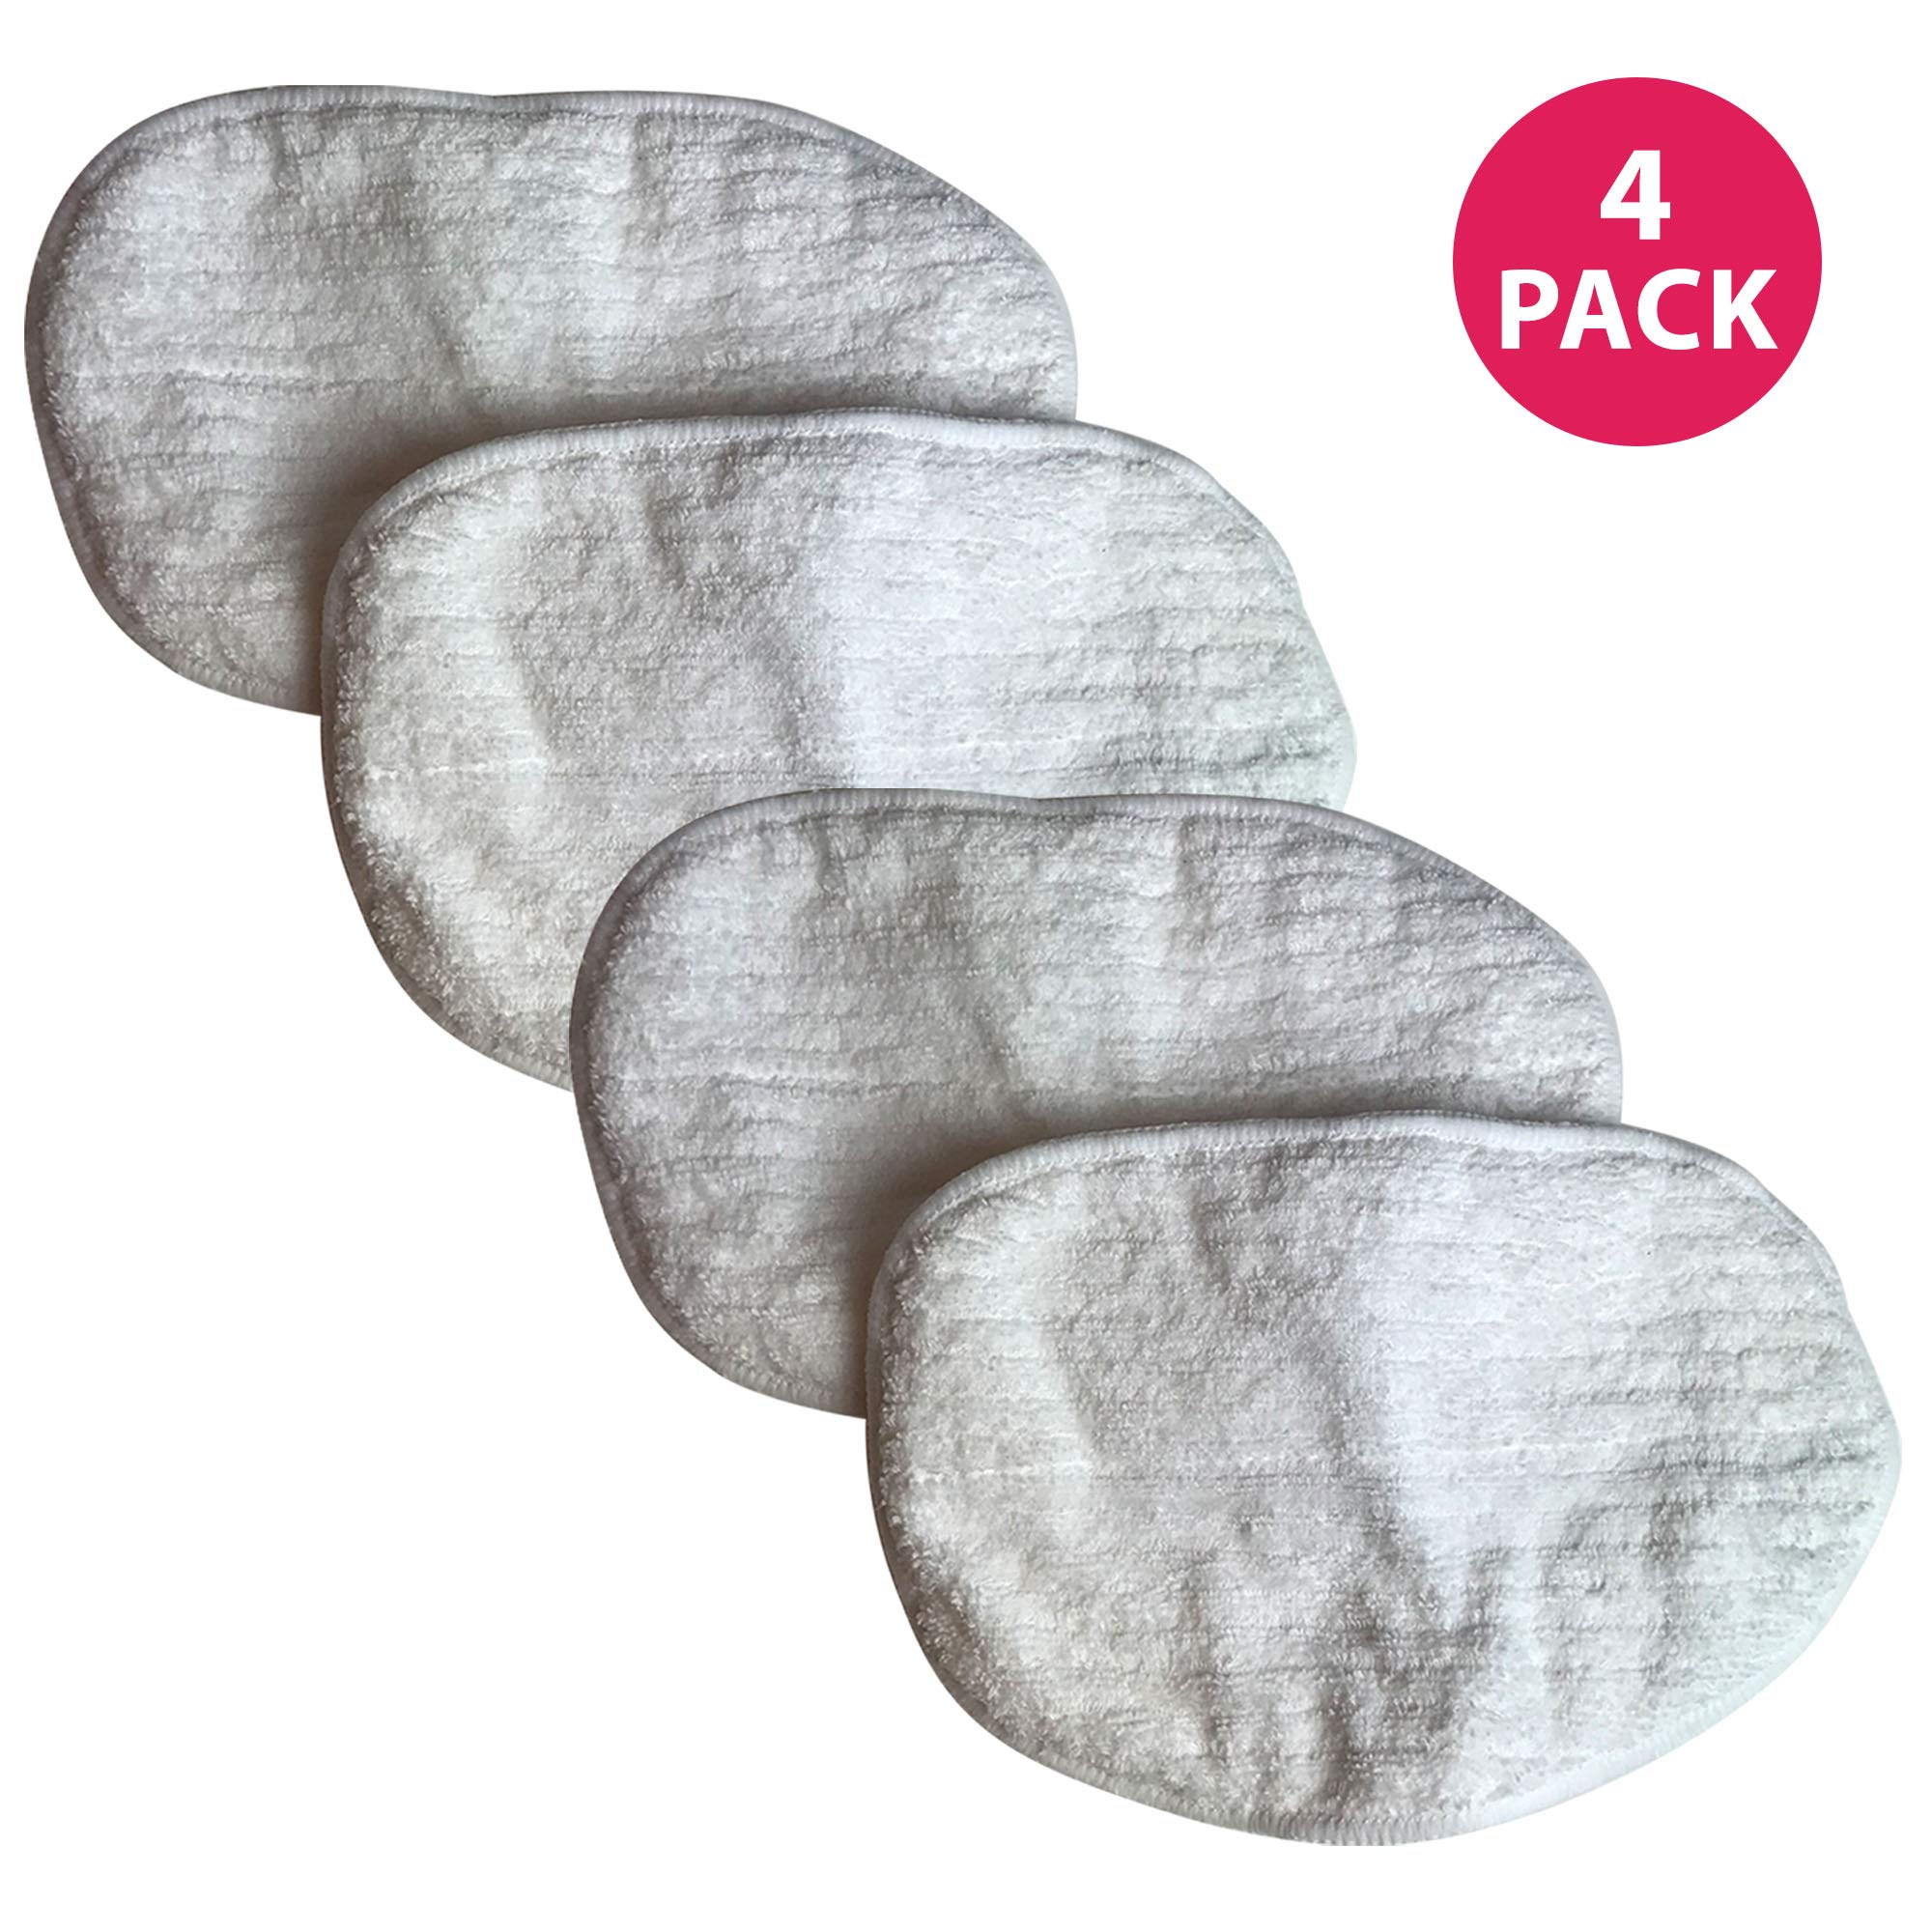 Think Crucial Replacement Mop Pads Compatible with Bissell Replacement Microfiber Steam Mop Pad Parts - Hardwood Mop Head Part - Parts 203-2158, 2032158, 3255, 32525 Model 1867 - Bulk (4 Pack)